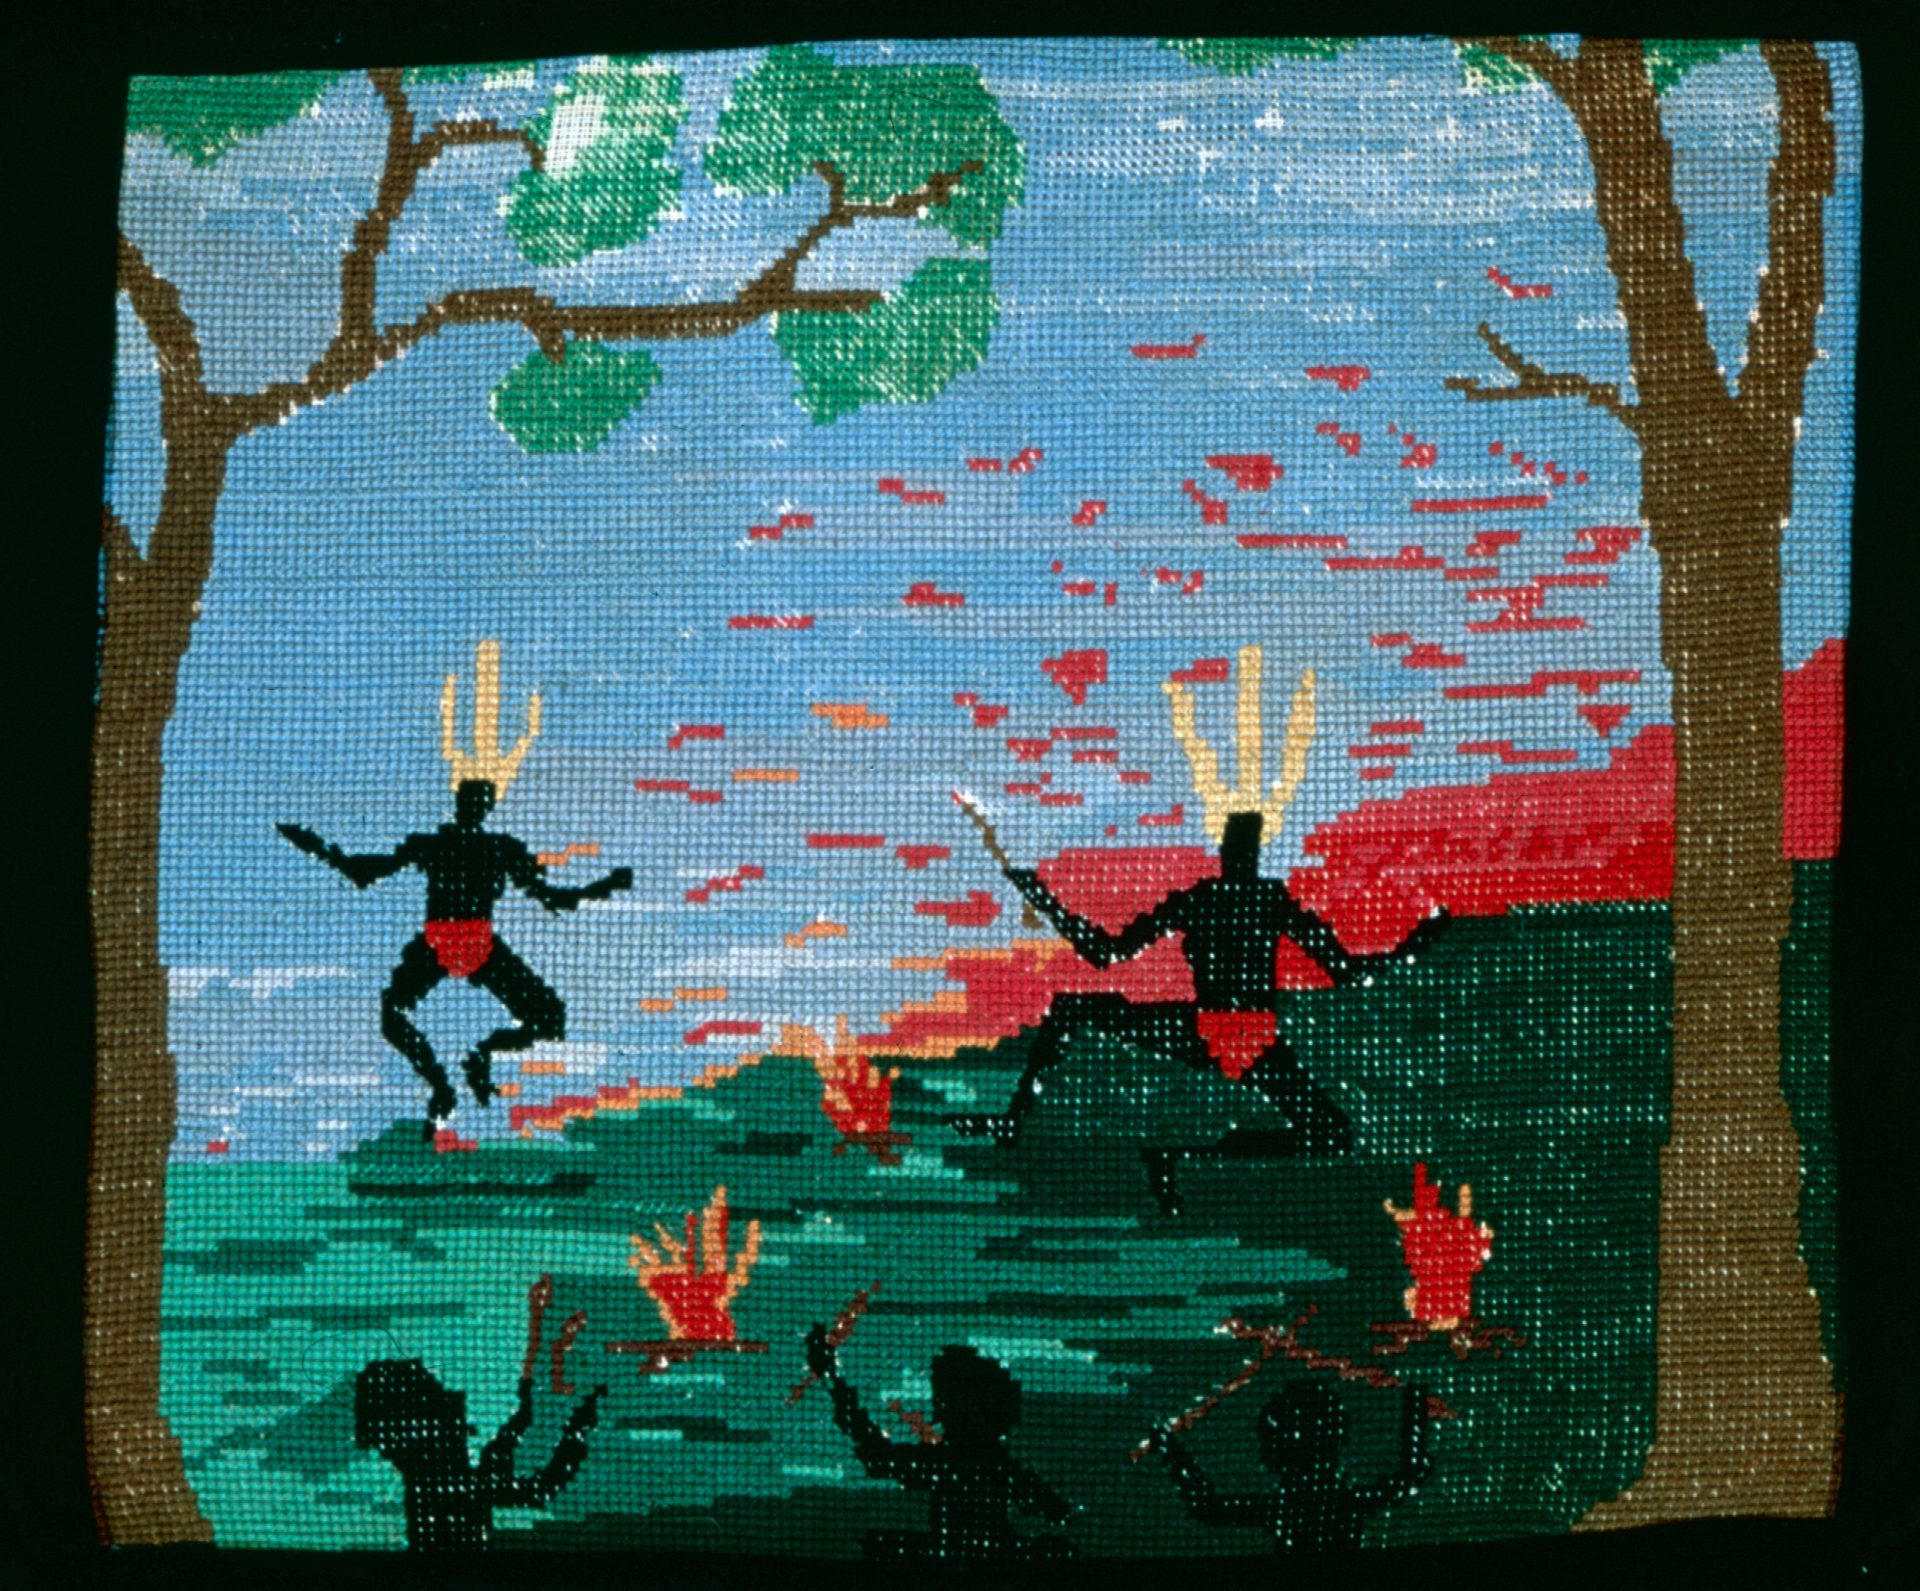 <em> Night Corroboree </em> by Vera Wallam, woollen tapestry on velvet frame, 33 x 40cm, 1948. Noel &amp; Lily White Collection, Berndt Museum of Anthropology.